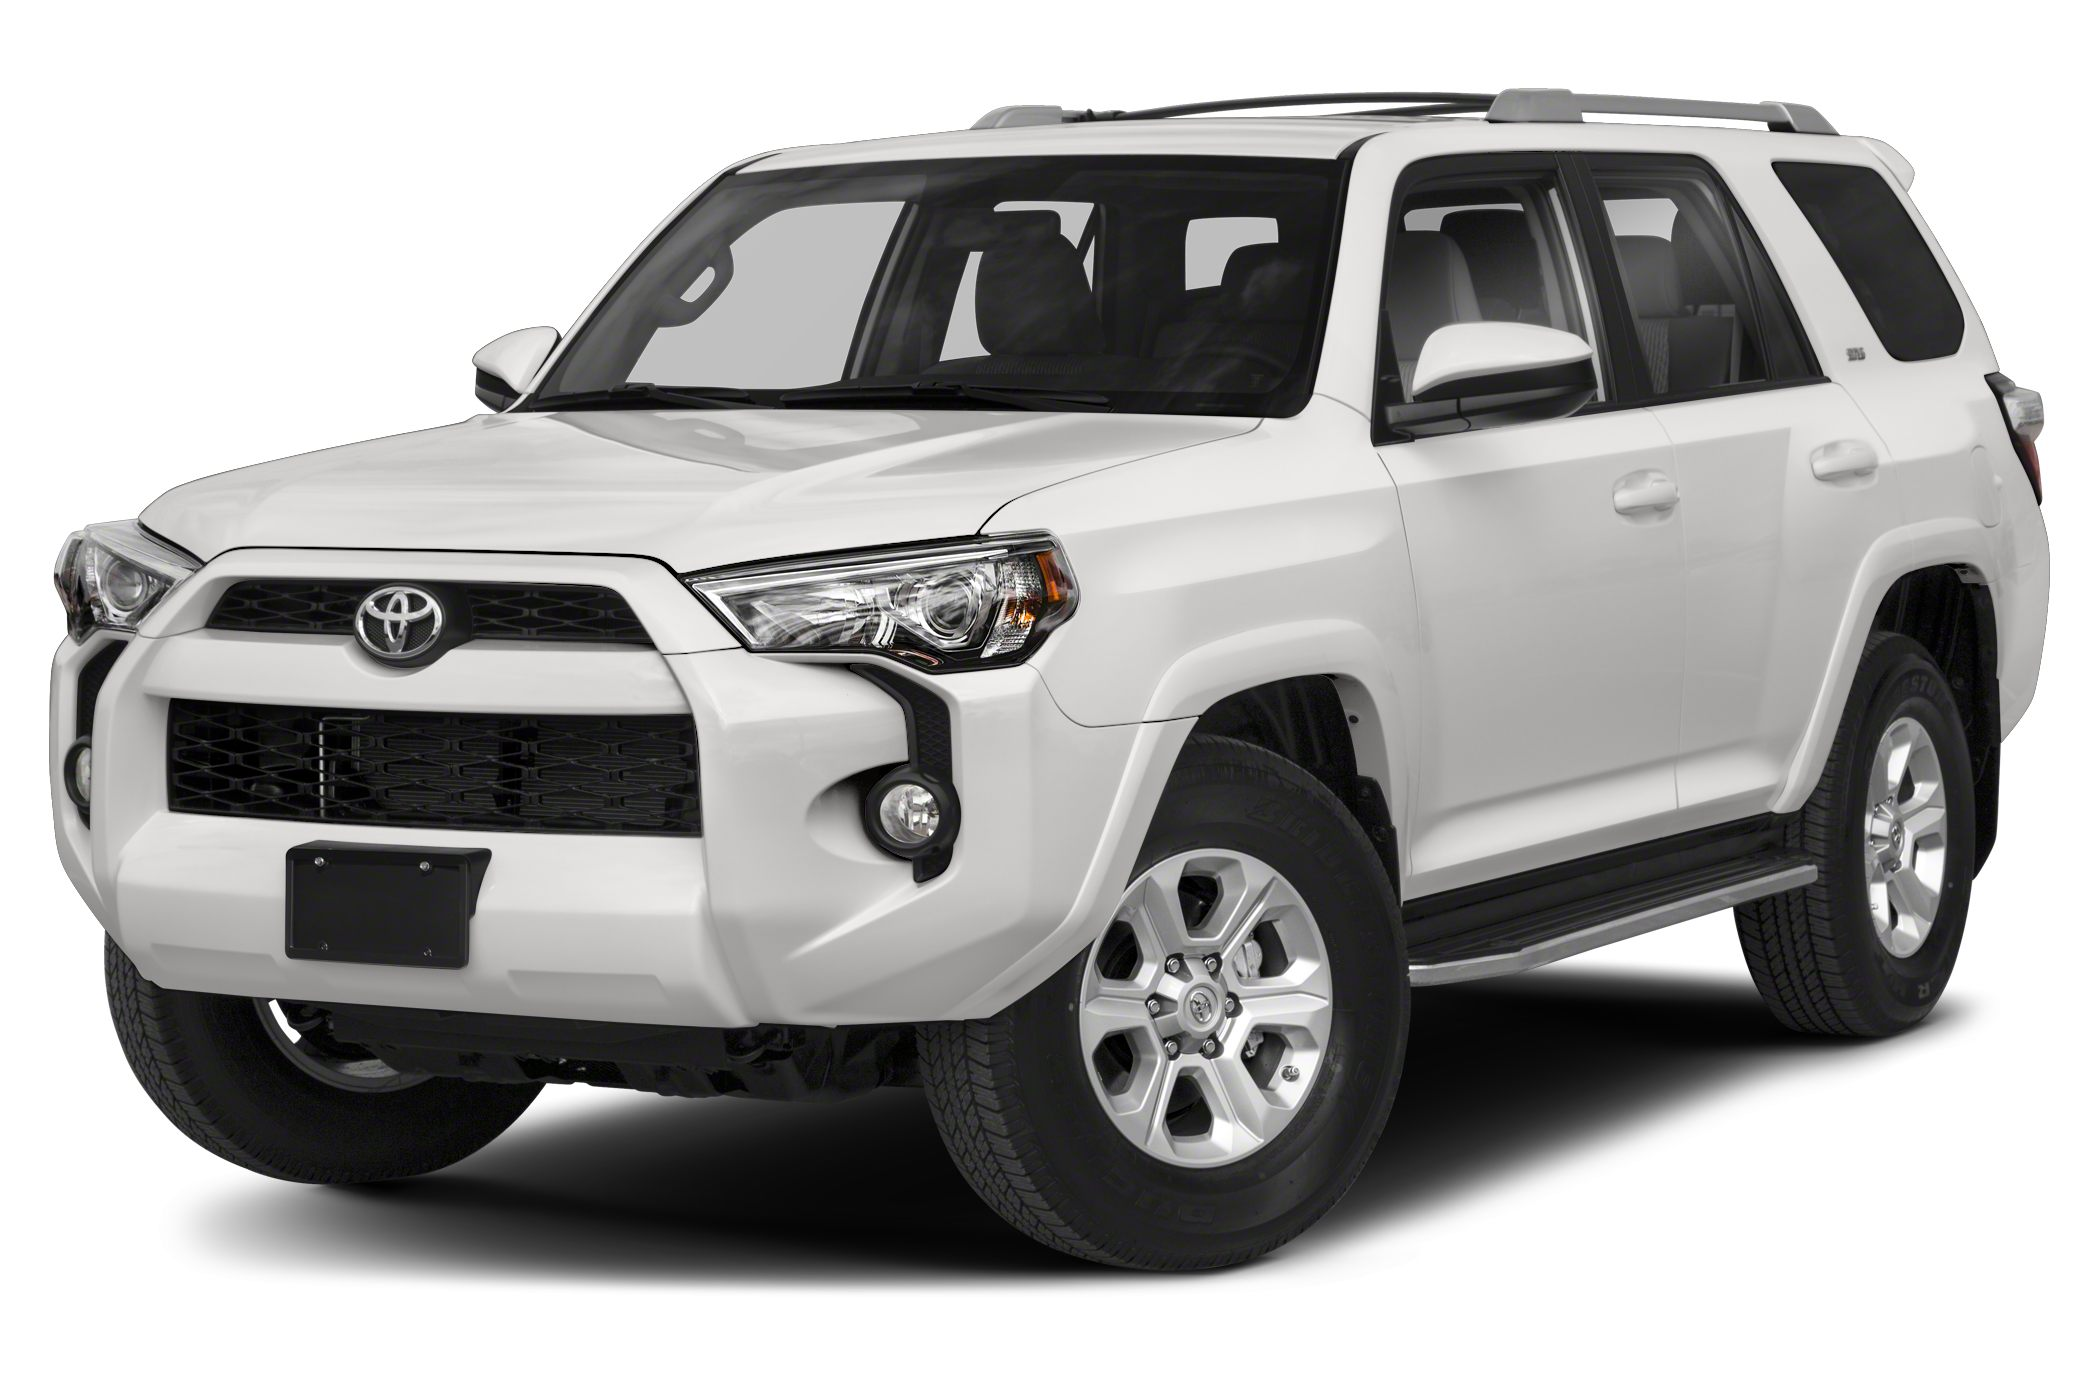 2019 Toyota 4runner Pricing And Specs